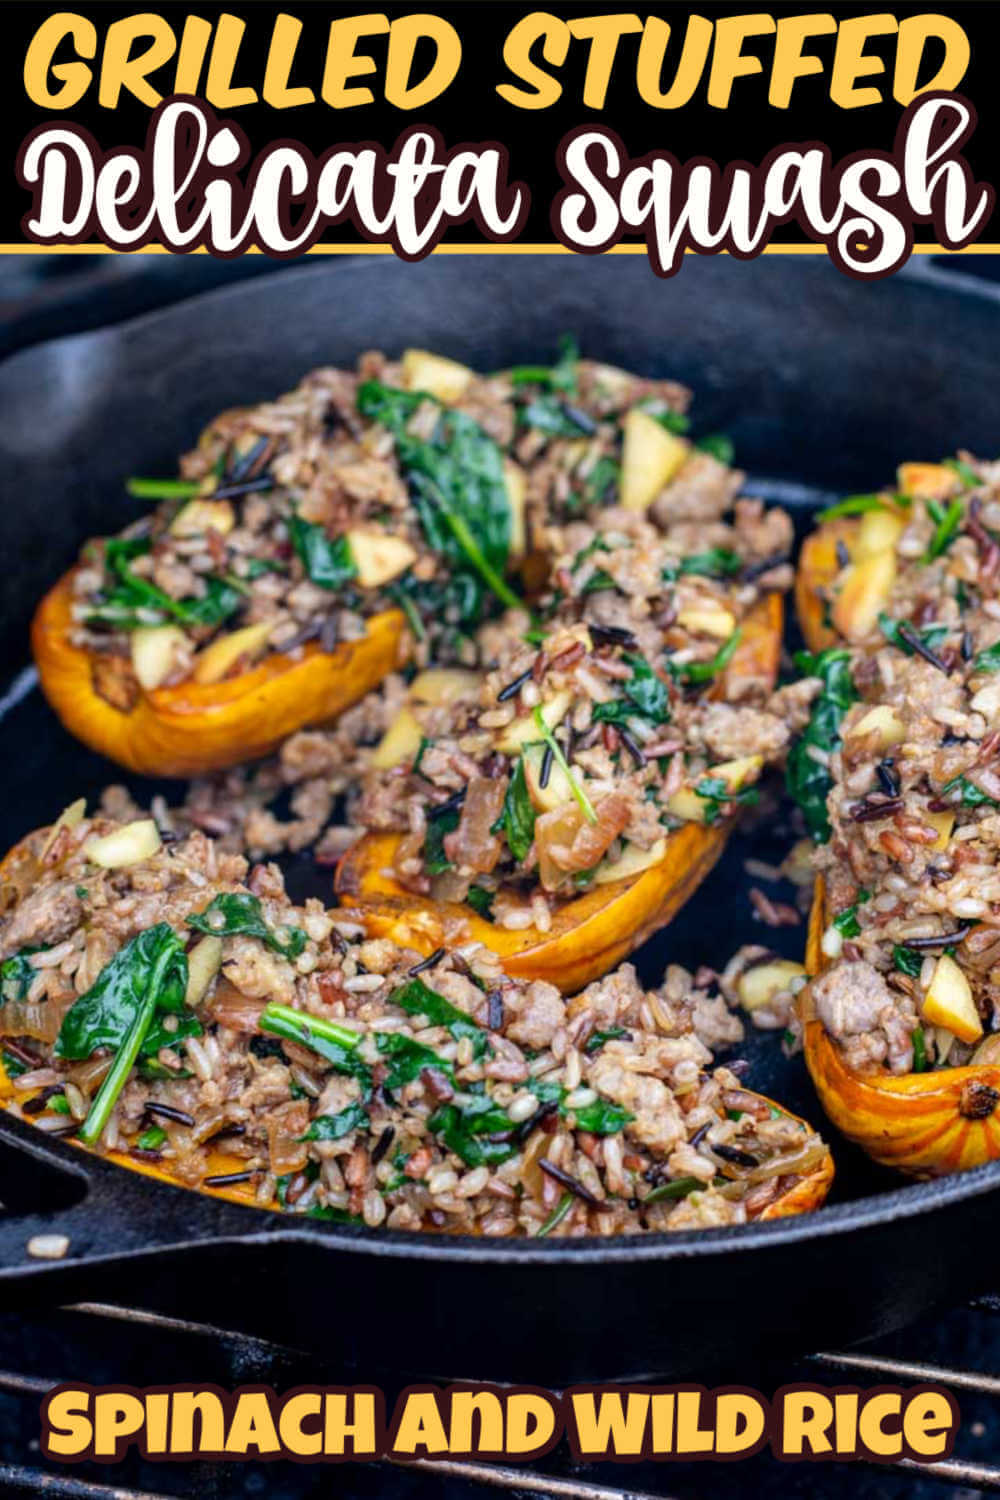 Grilled Stuffed Delicata Squash is a phenomenal dish to make on the grill this fall and winter.  This winter squash is stuffed with wild rice, sausage, apples and spinach to make for a delicious meal! #delicata #Stuffedsquash #squash #grilled #BGE #BigGreenEgg